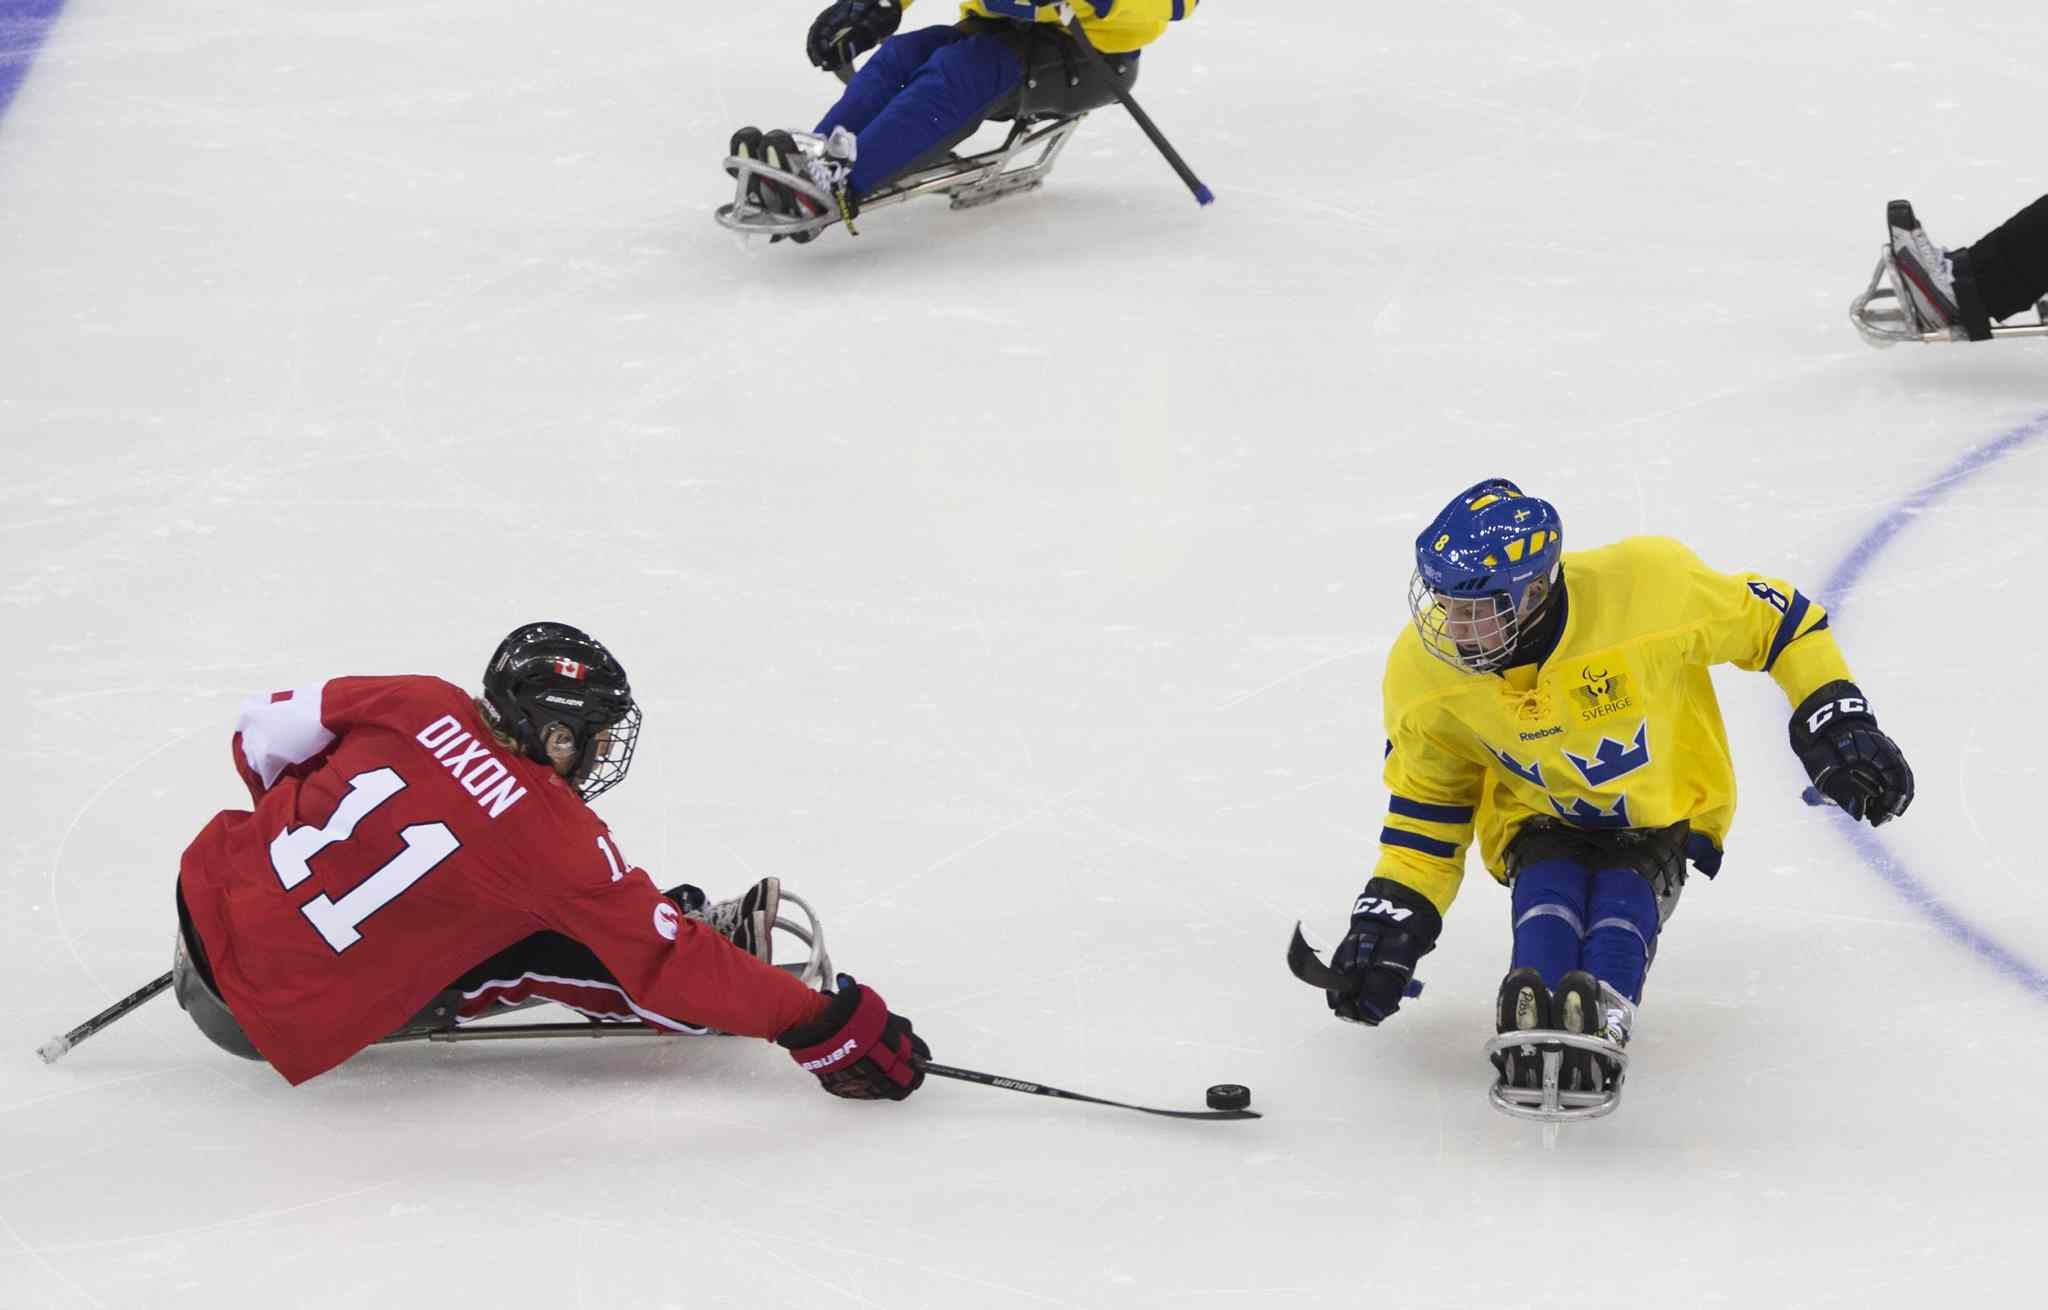 Adam Dixon of Canada, left, and Per Kasperi of Sweden, right, in action during the ice sledge hockey match at the Shayba Arena at the 2014 Winter Paralympics in Sochi, Russia, Saturday, March 8, 2014.